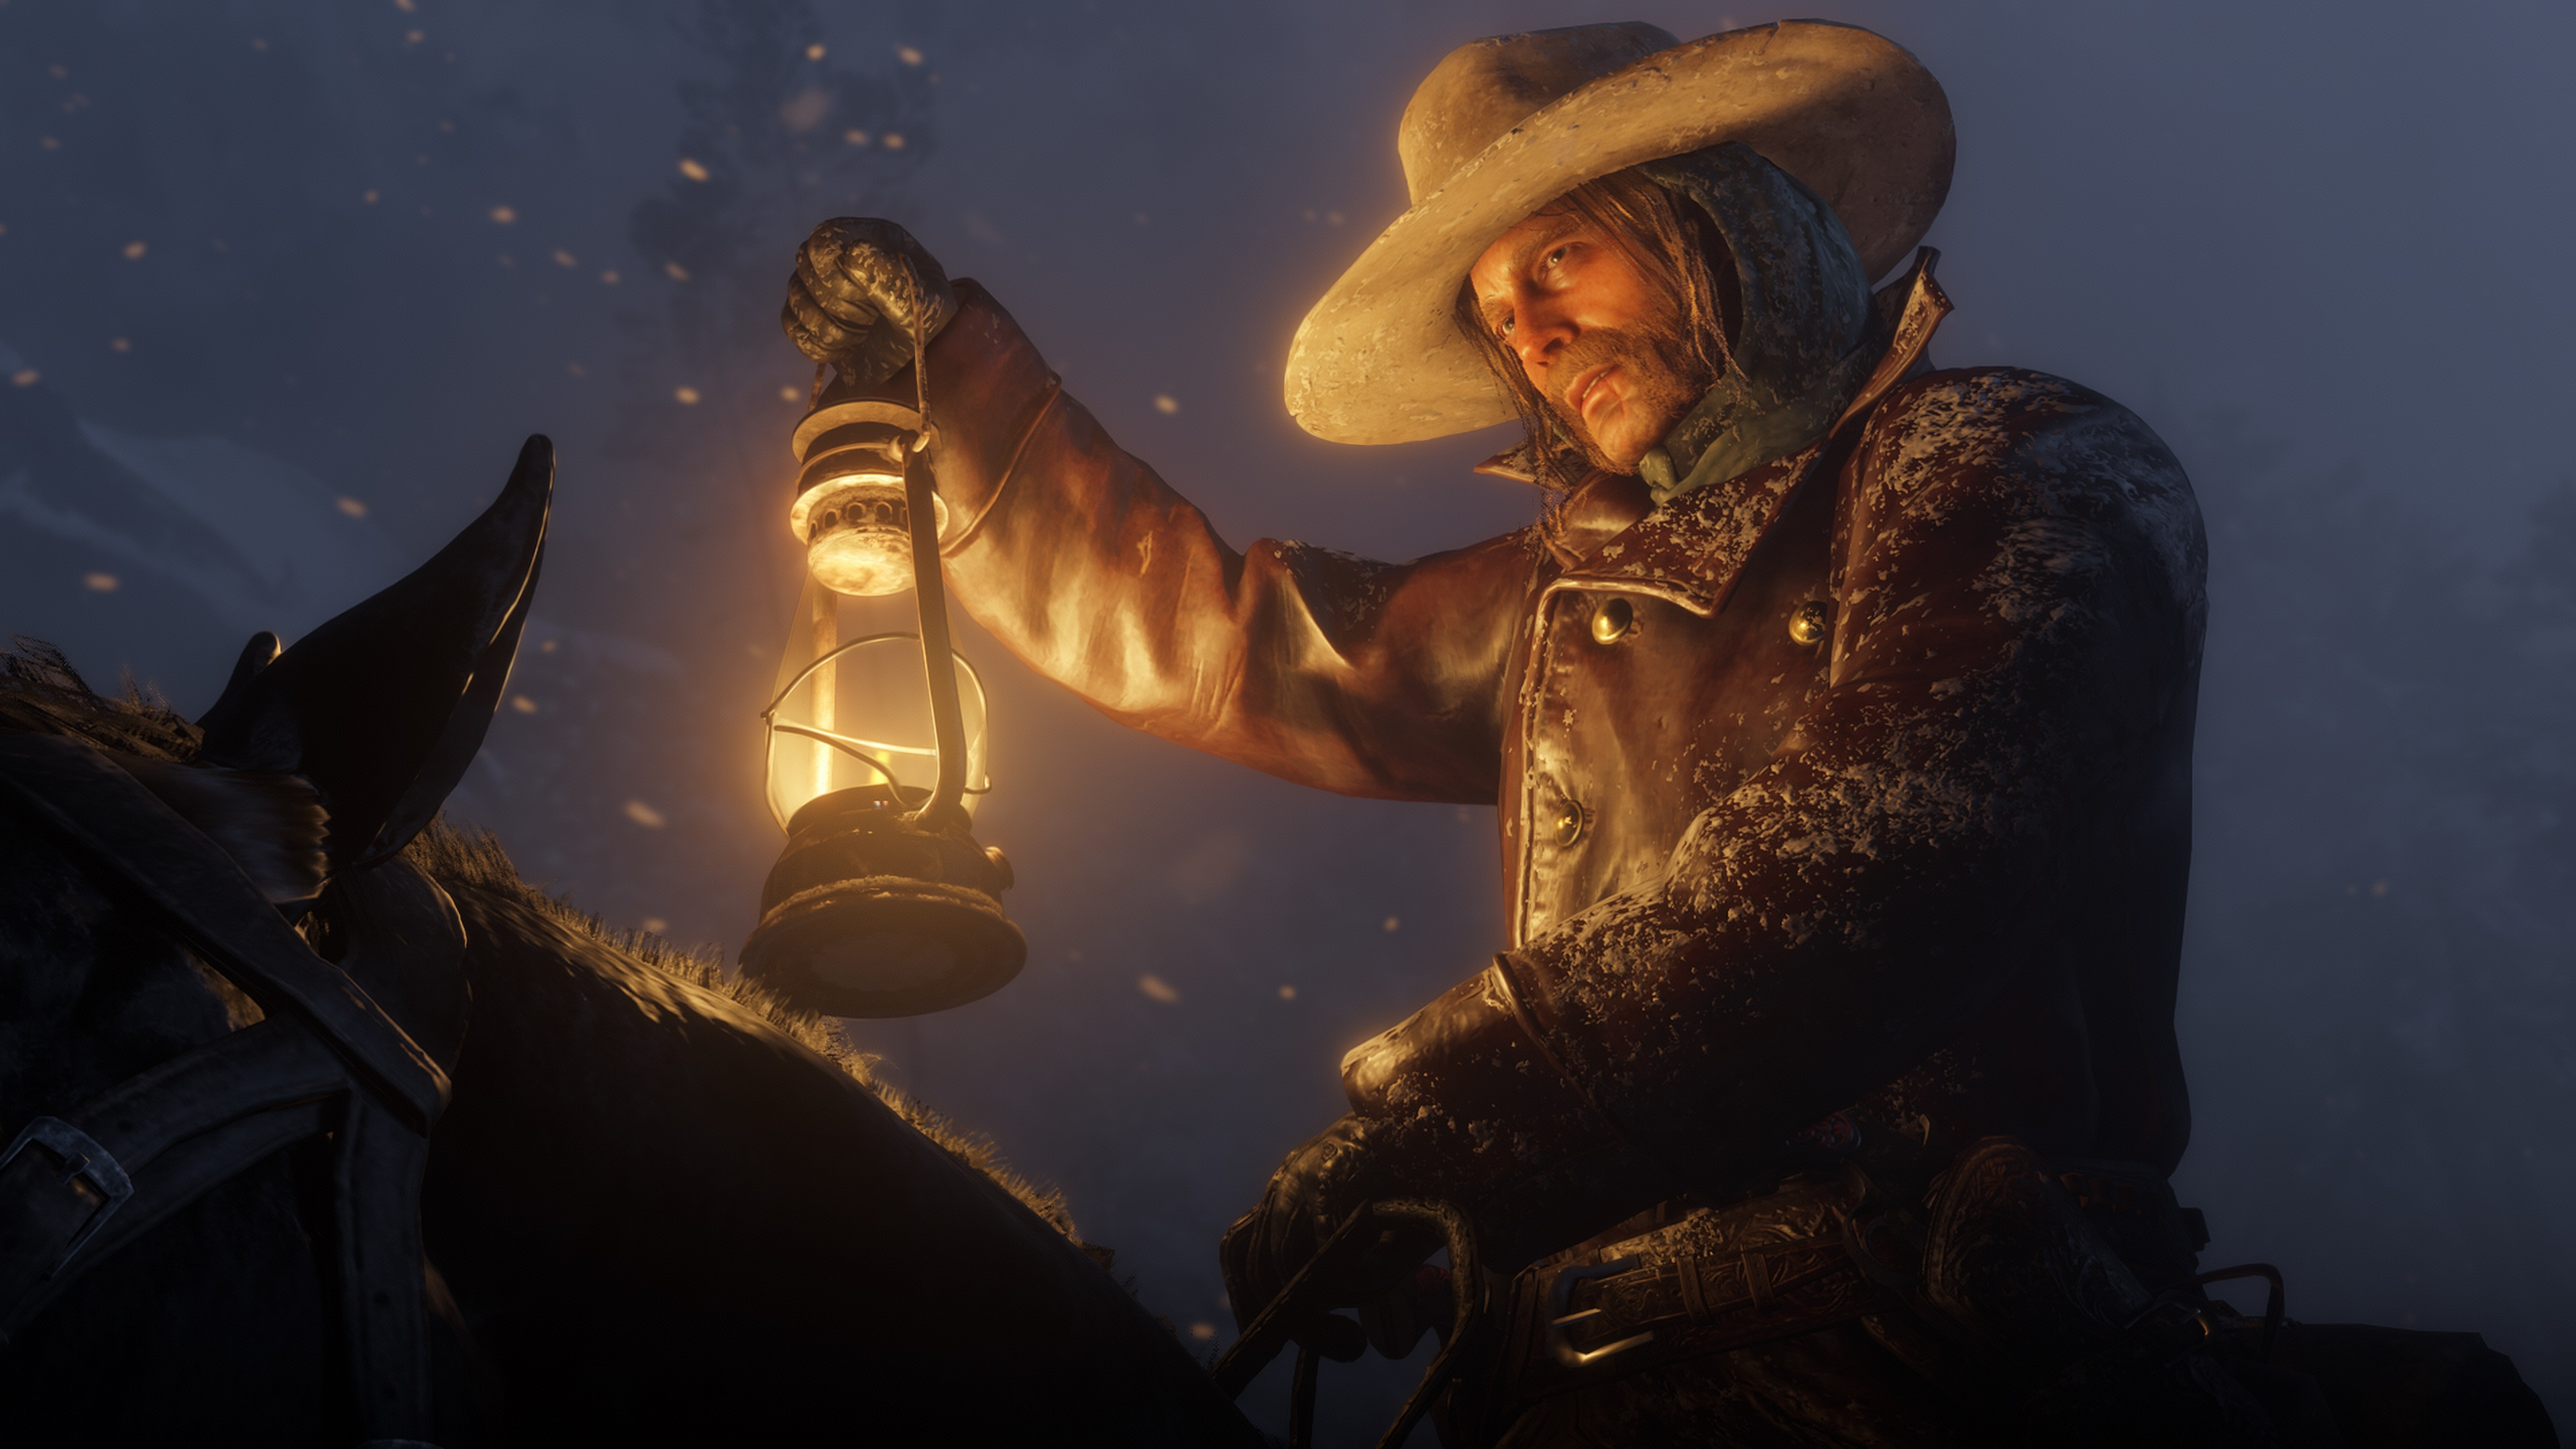 Red Dead Redemption 2 screenshot morgan éclaire son chemin à la lanterne